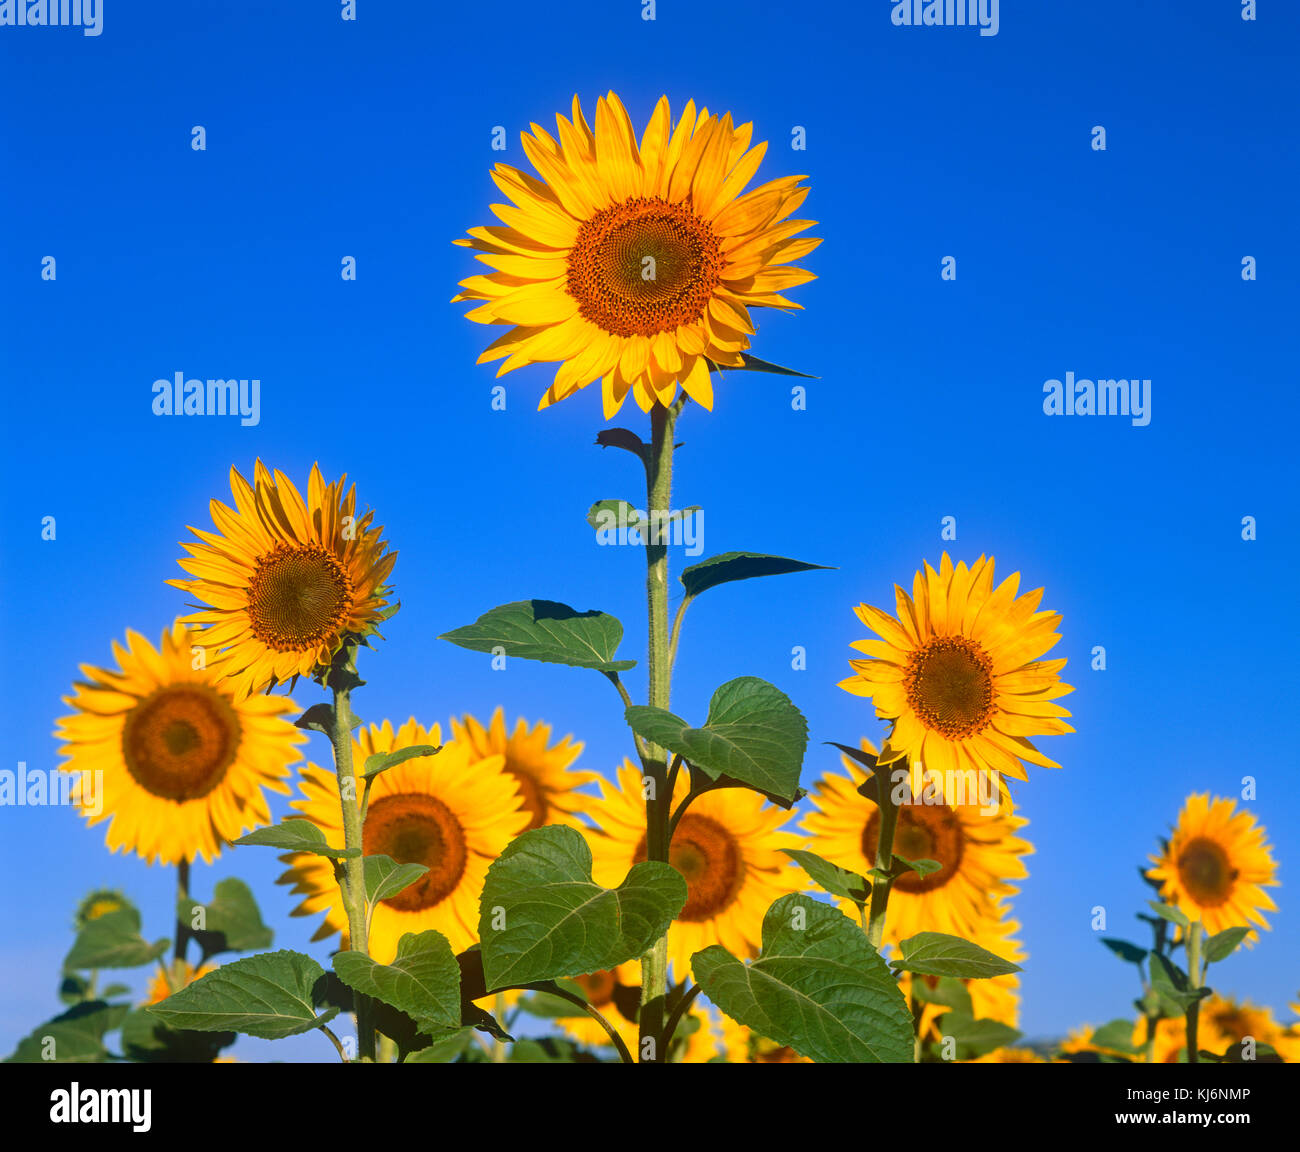 Sunflowers in Provence, France - Stock Image